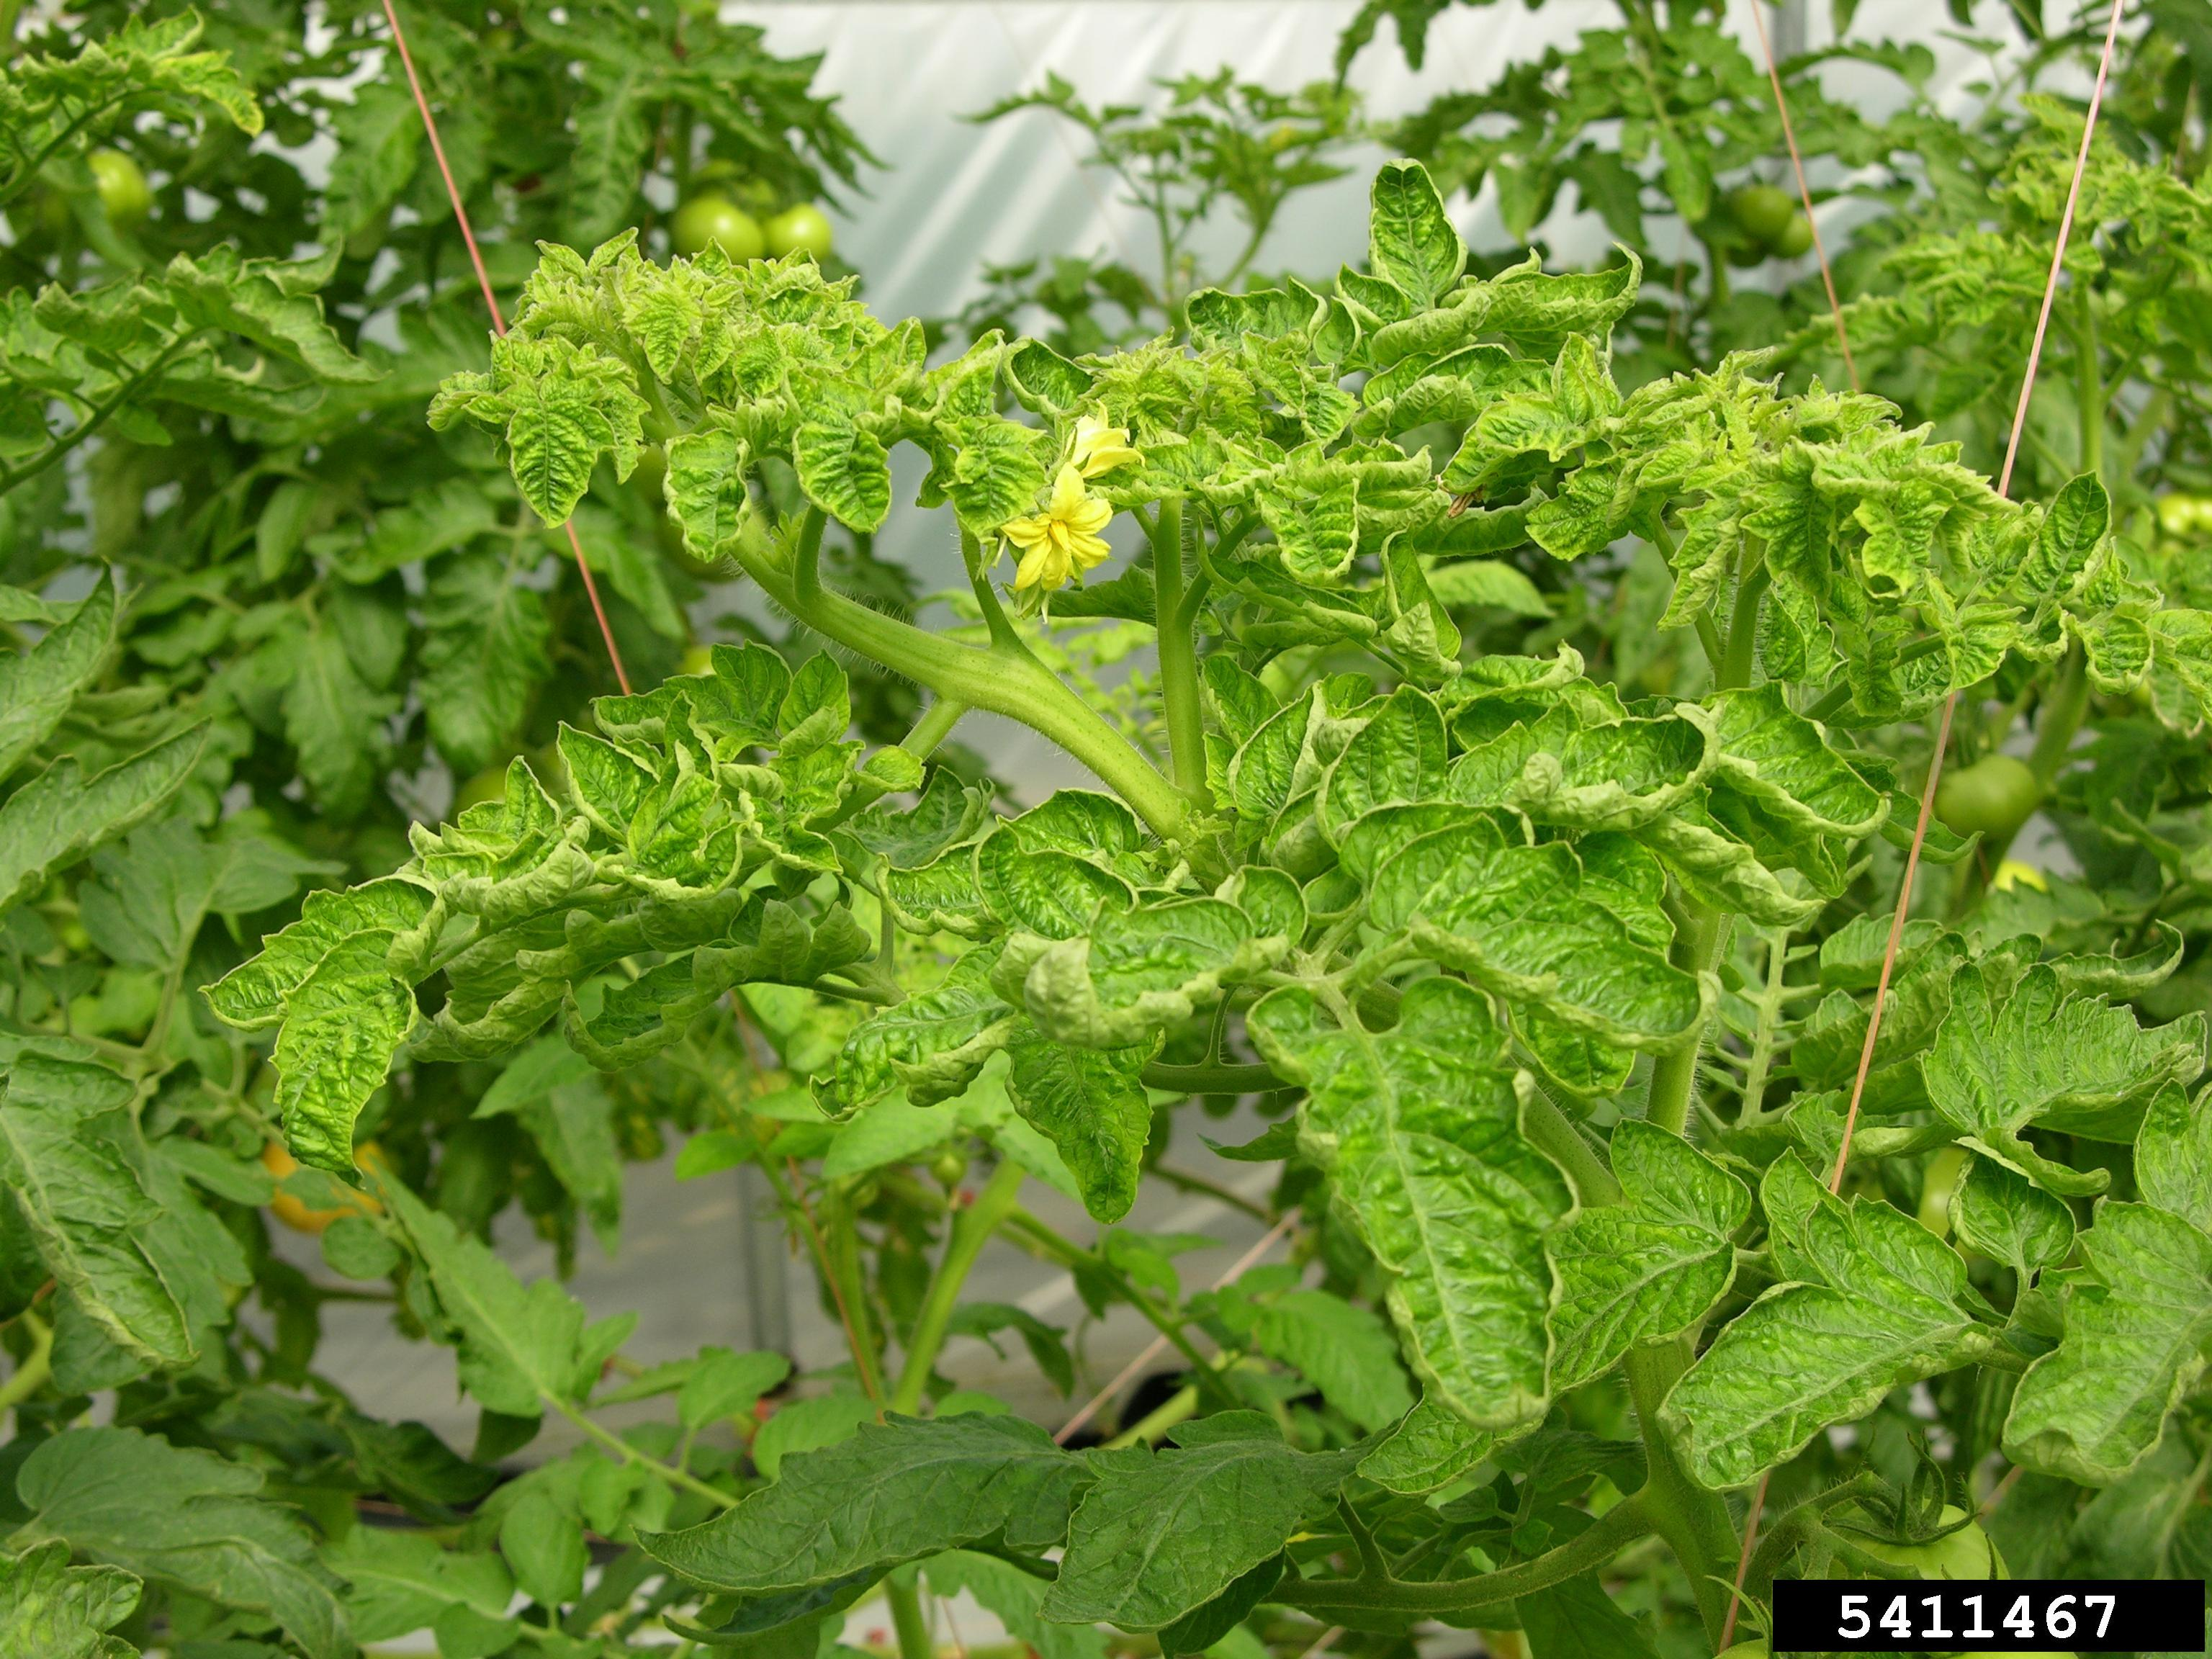 Tomato leaves can curl in response to environmental stresses, like lack of water, or as a symptom of a disease, like tomato leaf curl virus, shown here.